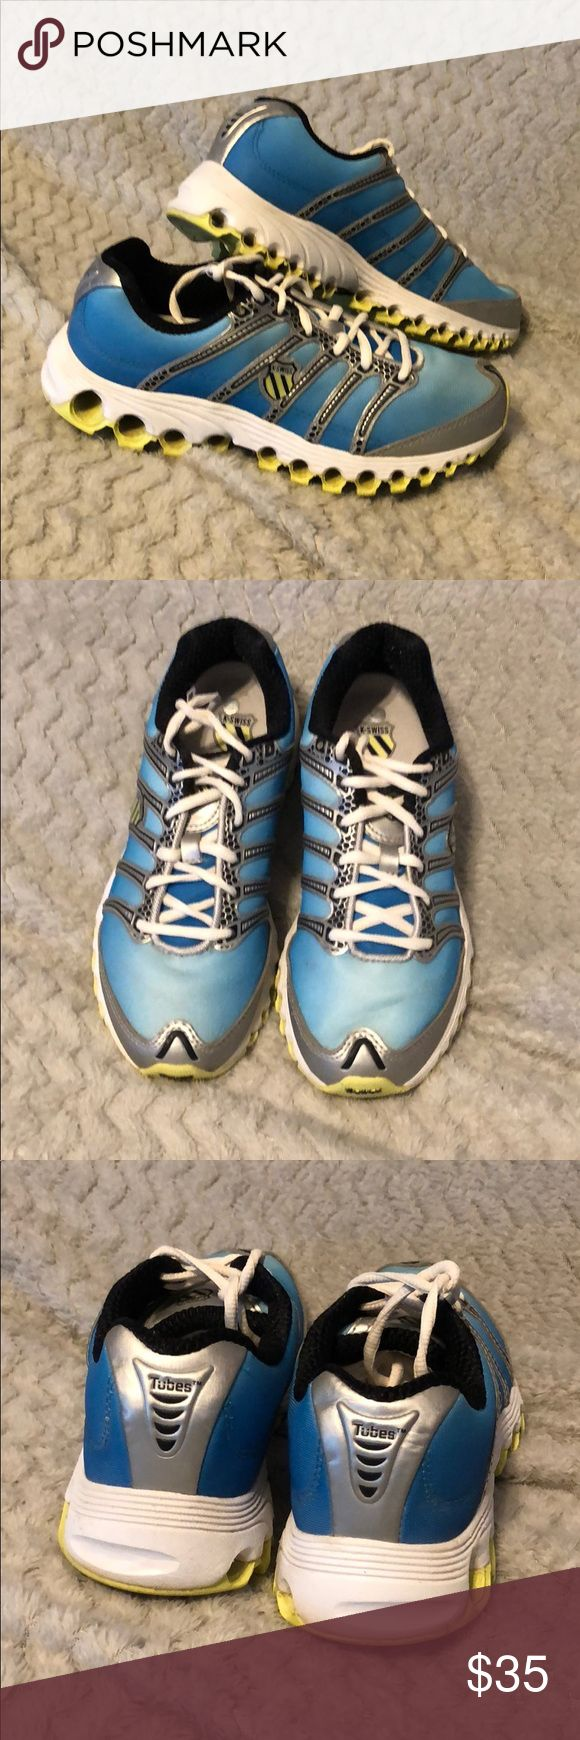 K Swiss shoes size 7.5 K Swiss athletic shoes size 7.5 k swiss Shoes Athletic Shoes